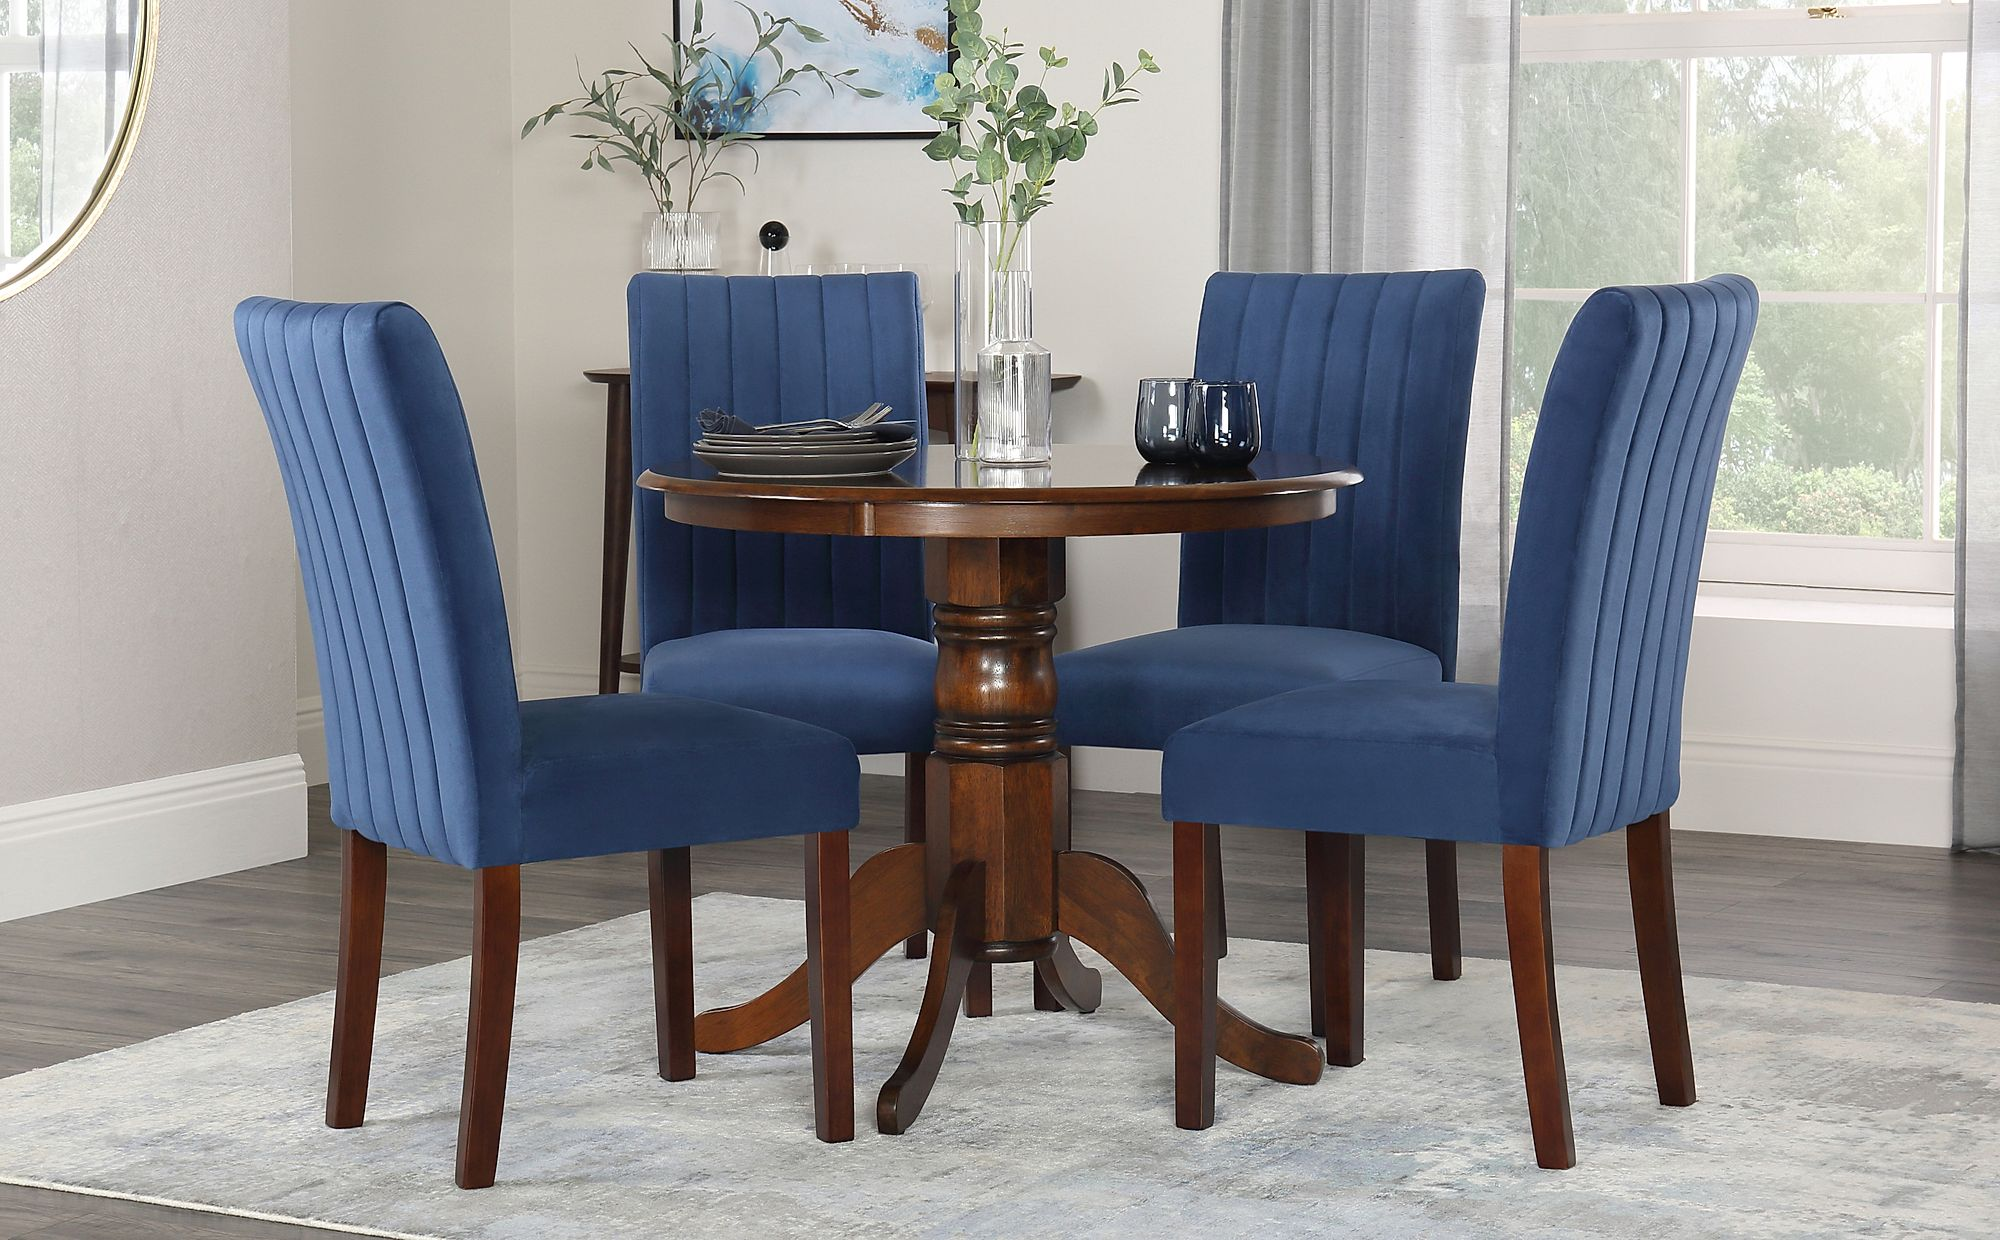 Surprising Details About Kingston Round Dark Wood Dining Table With Salisbury Blue Velvet Chairs Best Image Libraries Thycampuscom